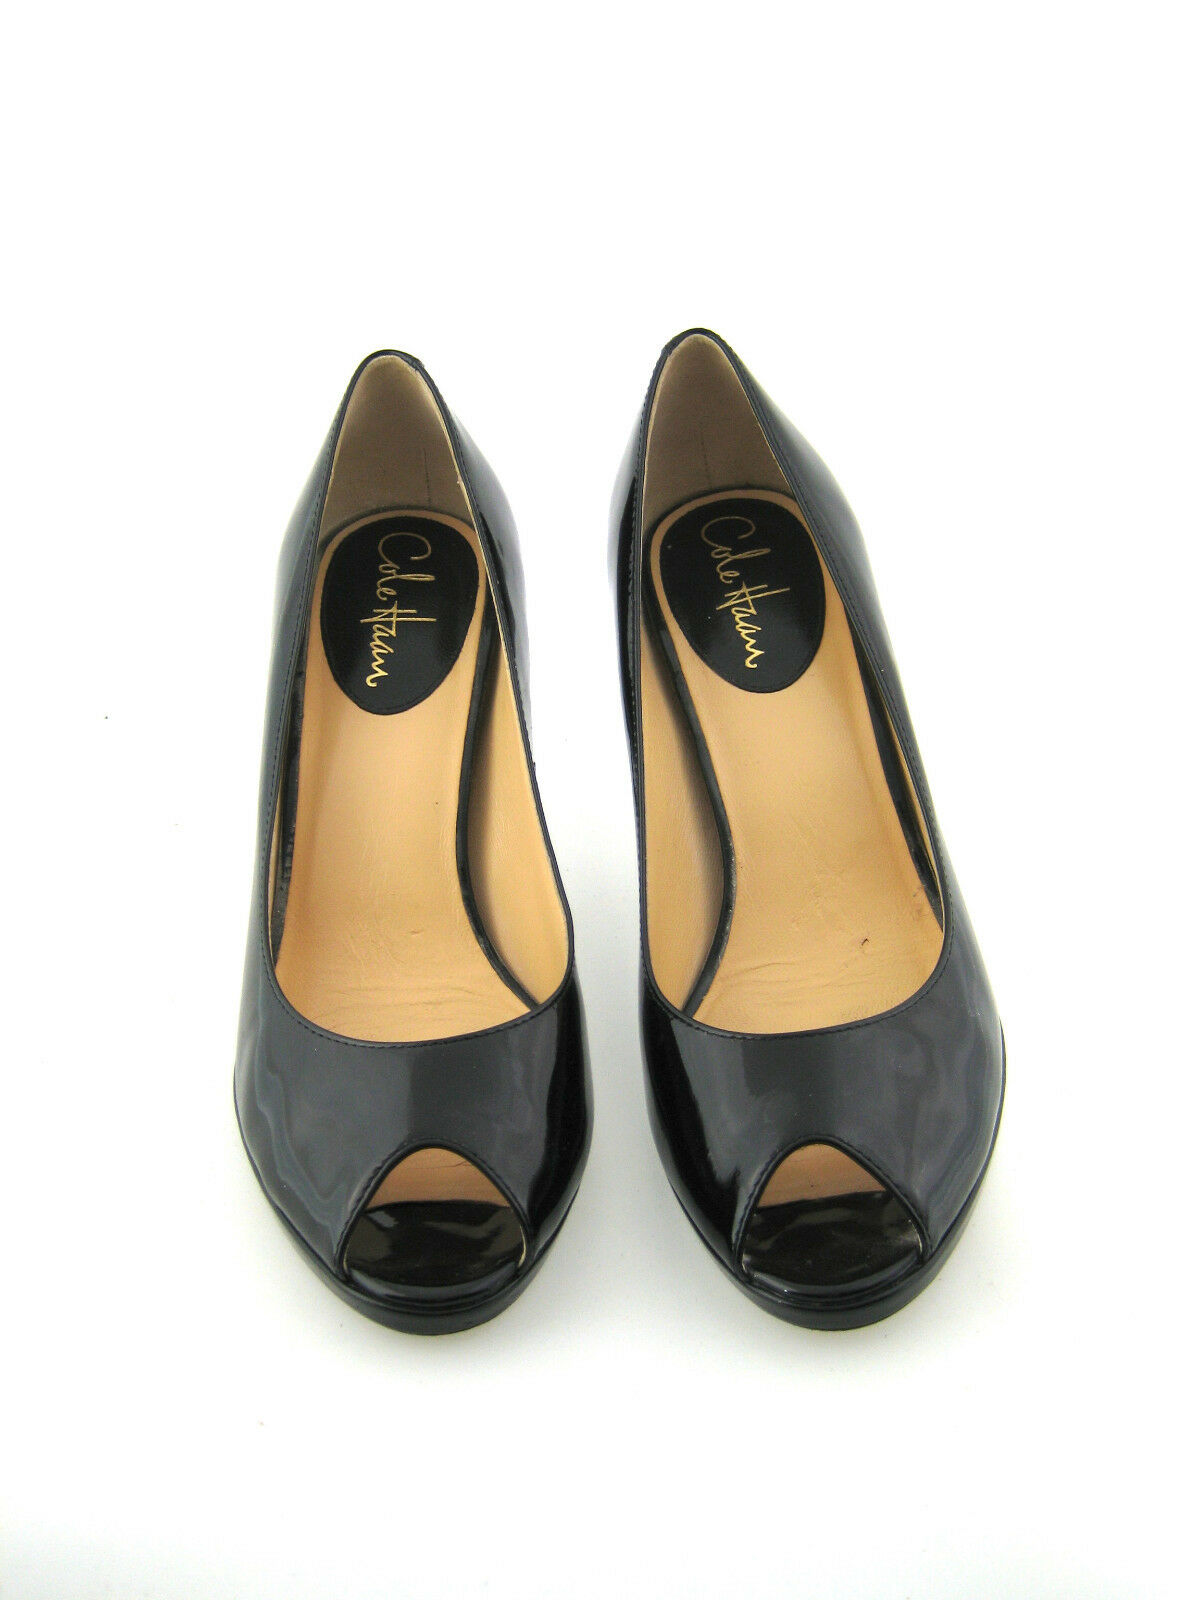 COLE HAAN Black Patent Leather Peep Toe Heeled Pump Size 8